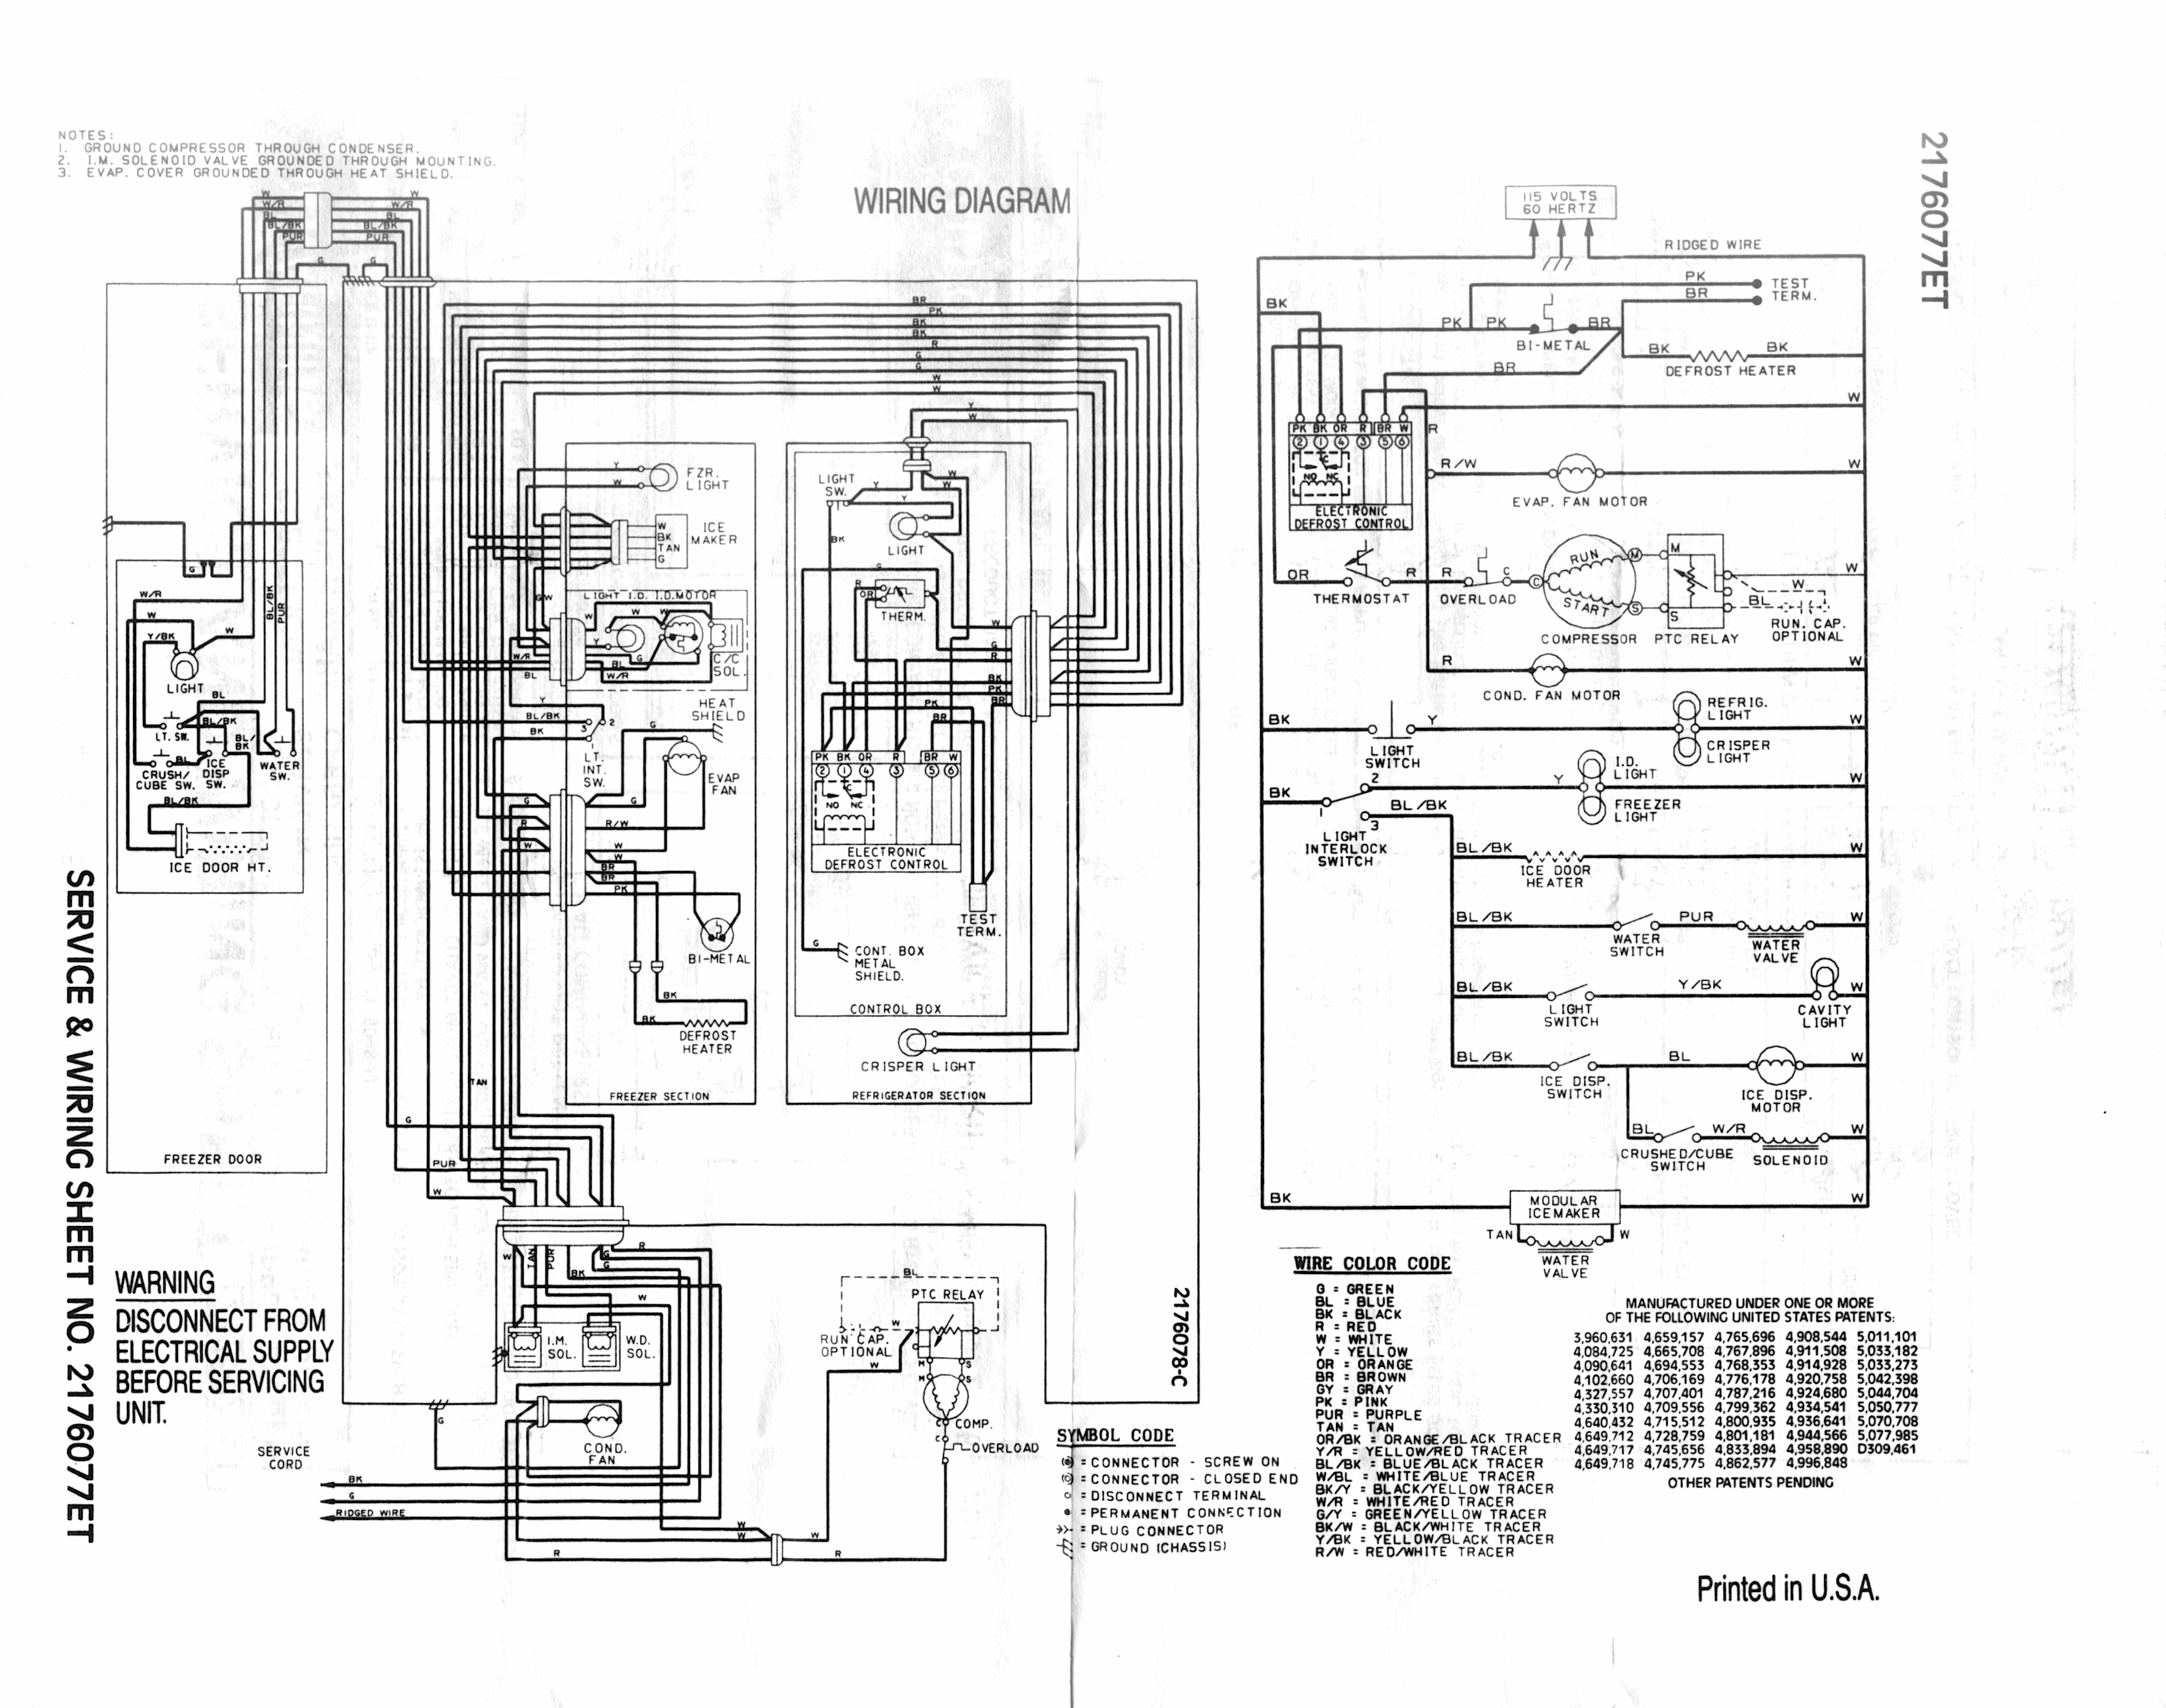 Whirlpool Refrigerator Wiring Diagram -10 000 Psi Needle Valve Diagram |  Begeboy Wiring Diagram Source | Whirlpool Refrigerator Wiring Diagram |  | Begeboy Wiring Diagram Source